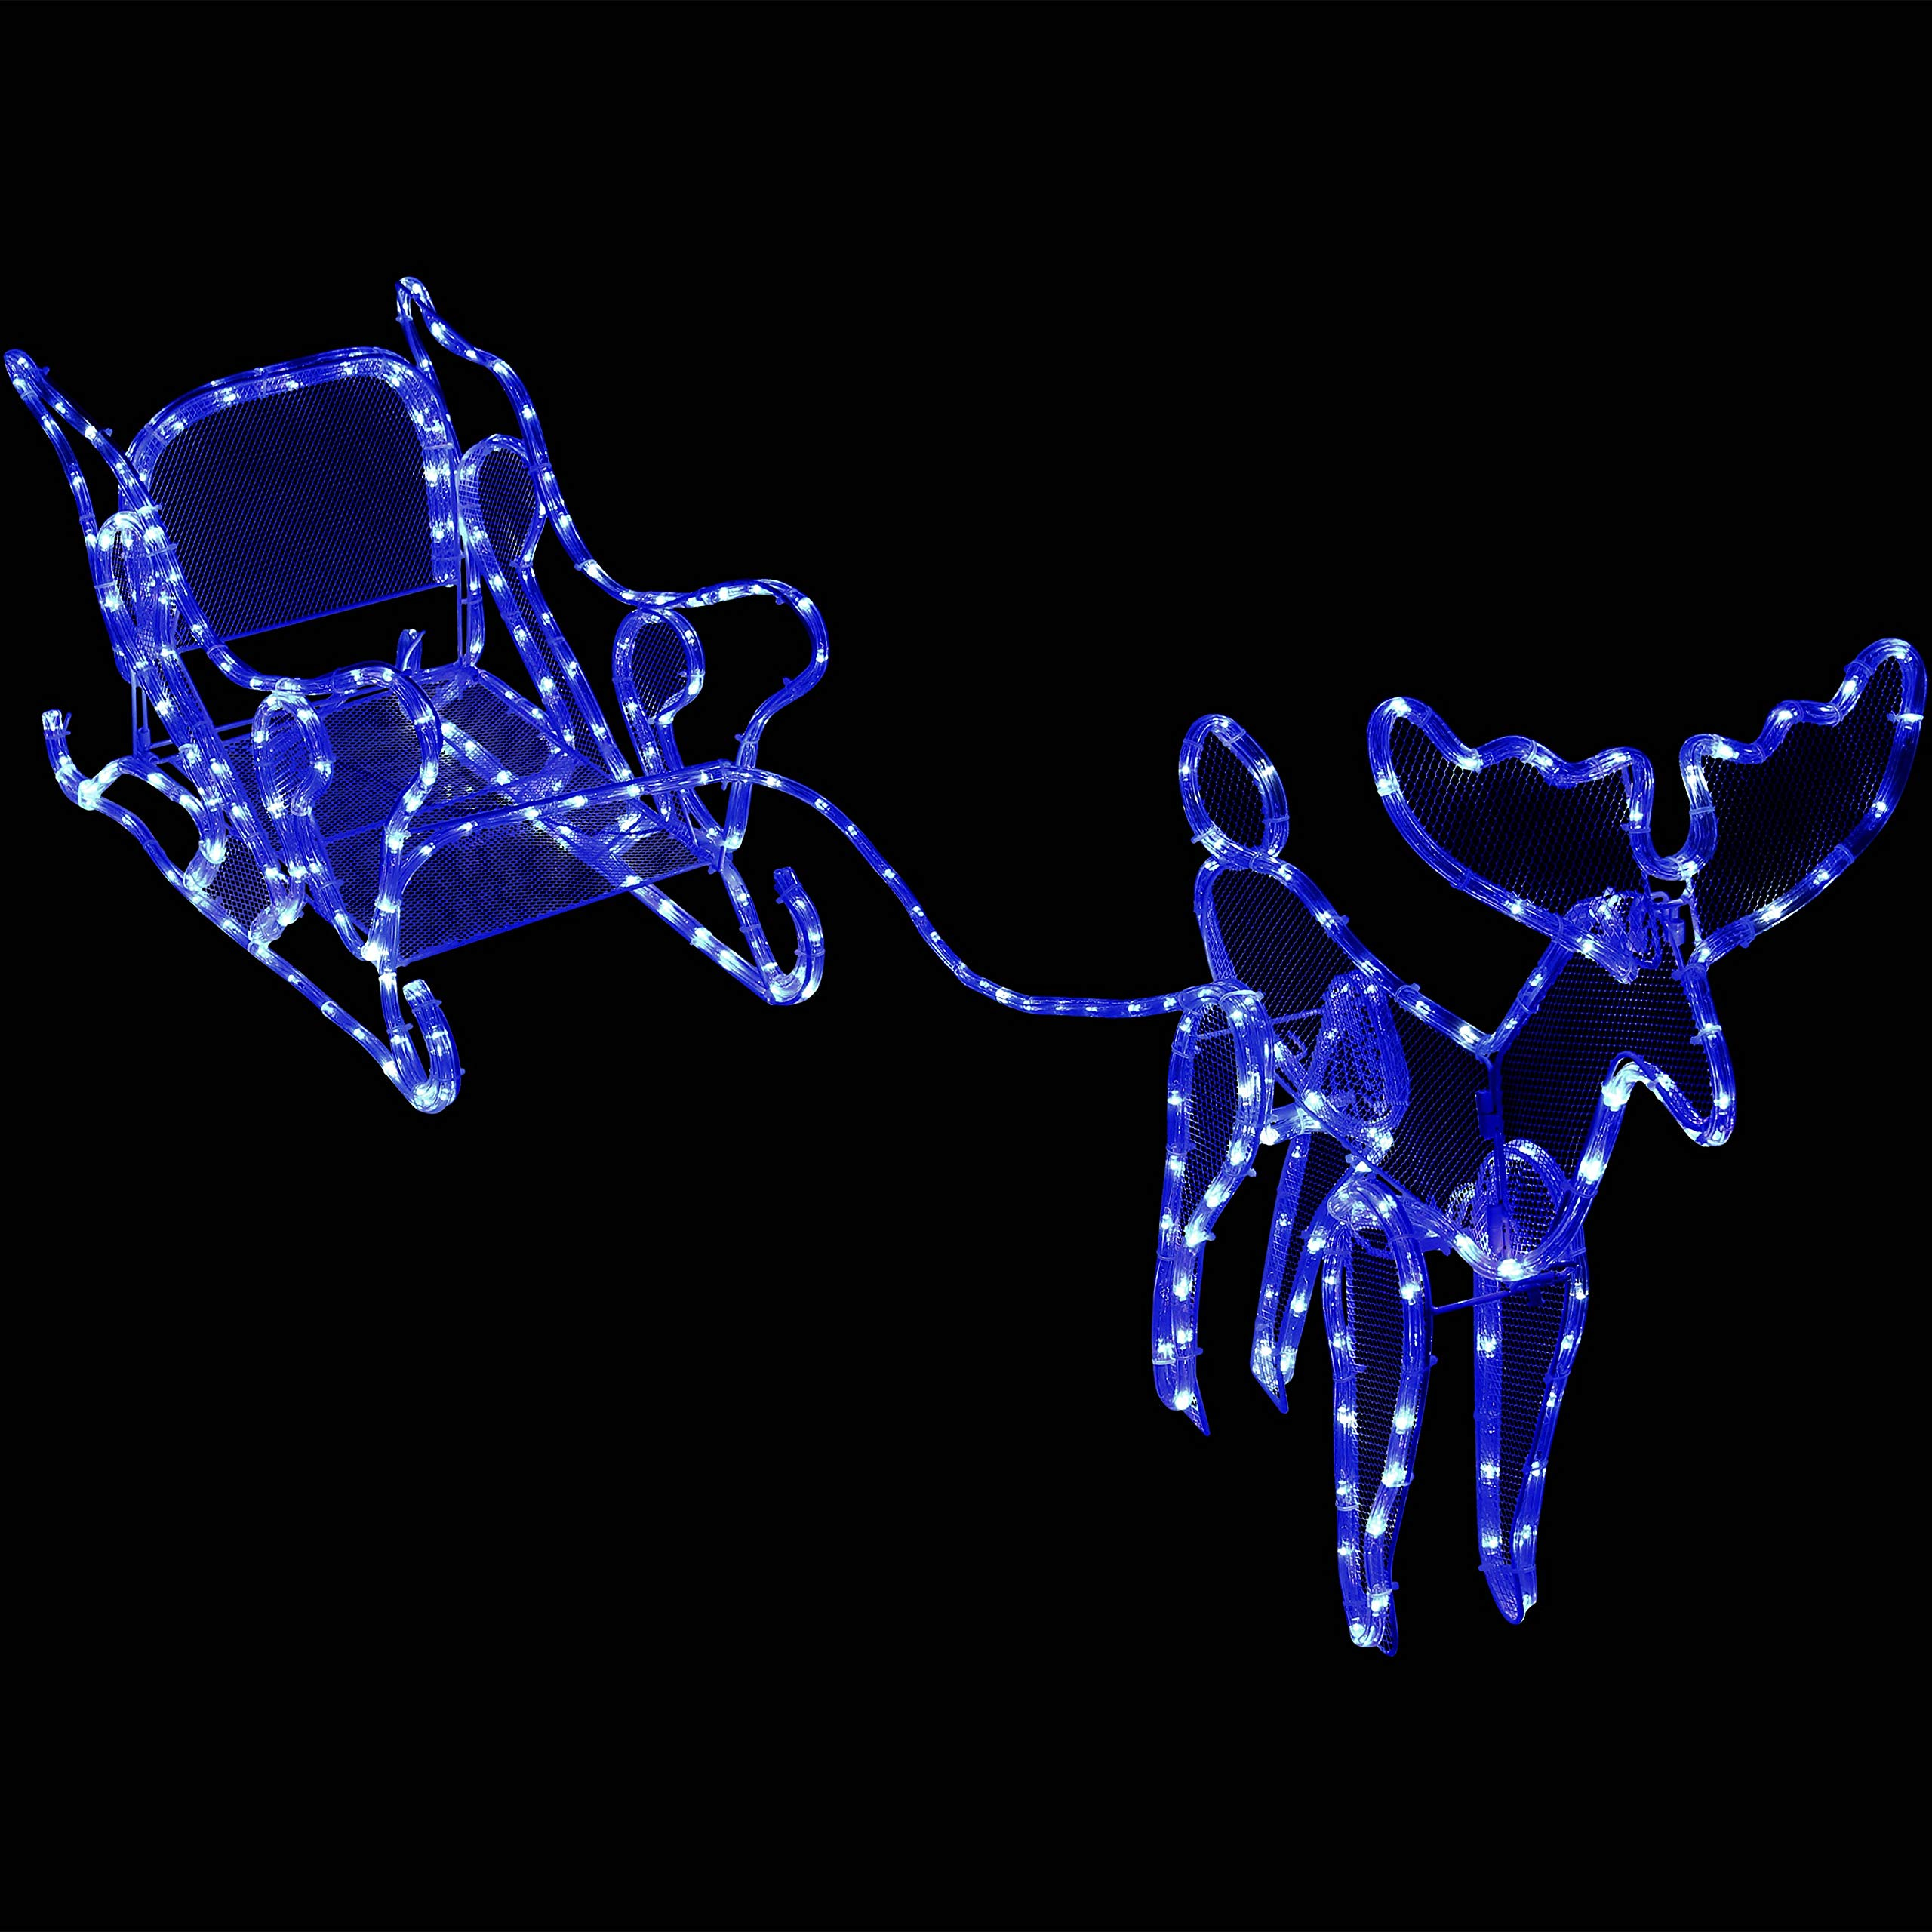 Sunnydaze Decor Christmas Sleigh with Reindeer Light Display, Outdoor Holiday Decoration with Blue and White LED Lights, 58-Inch Long x 23-Inch Height